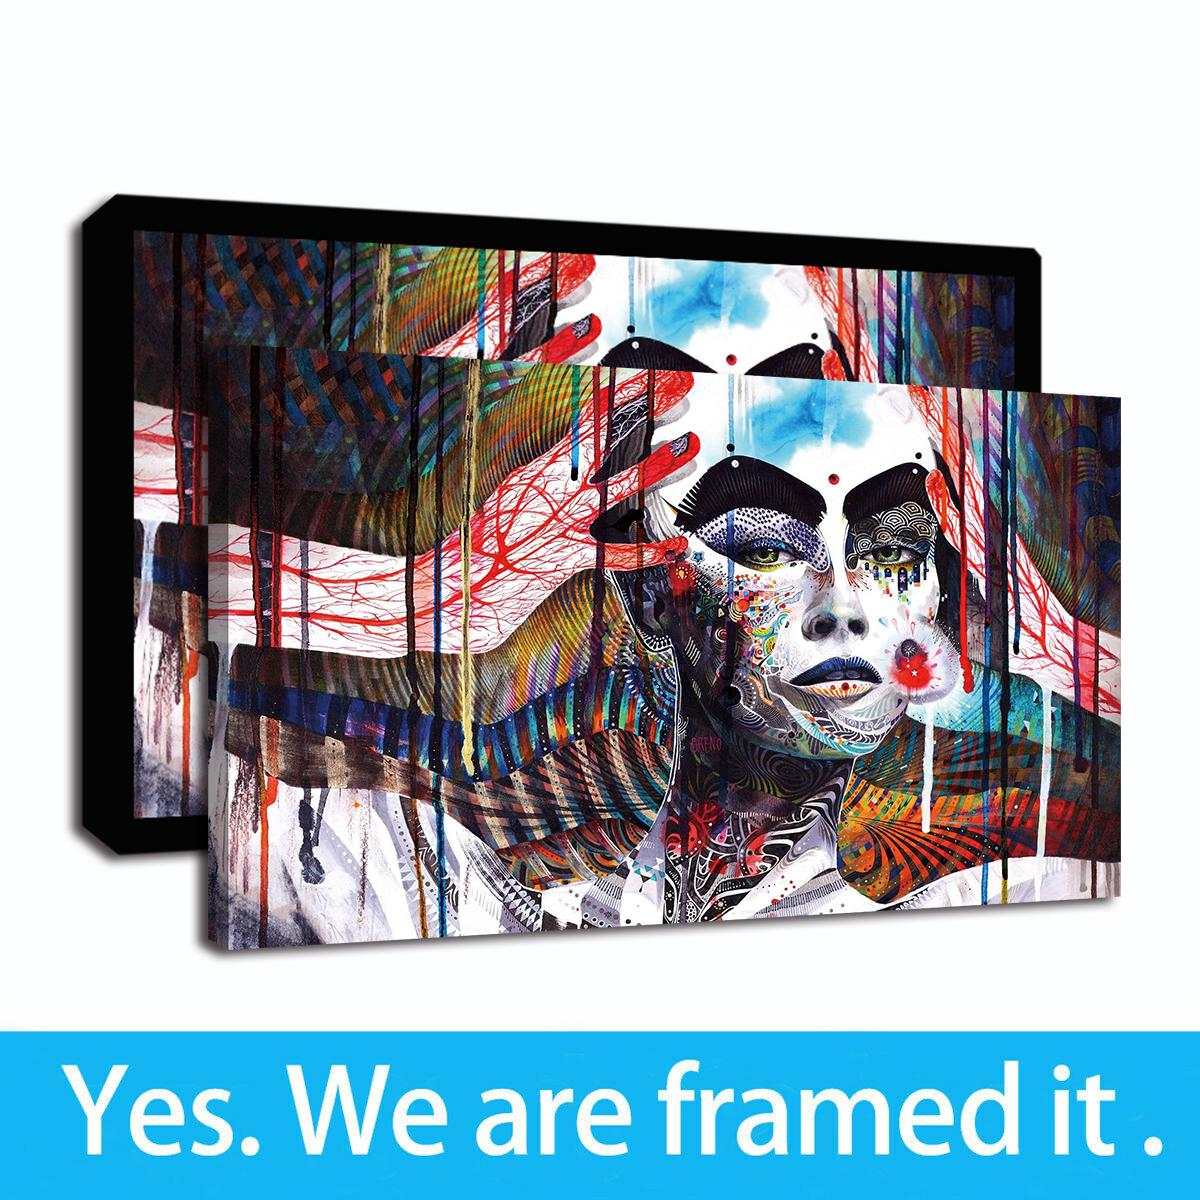 Photography Women Graffiti Mural Street Wall Abstract Picture Art Framed Canvas Wall Giclee Art Print Oil Painting on Canvas Home Decor